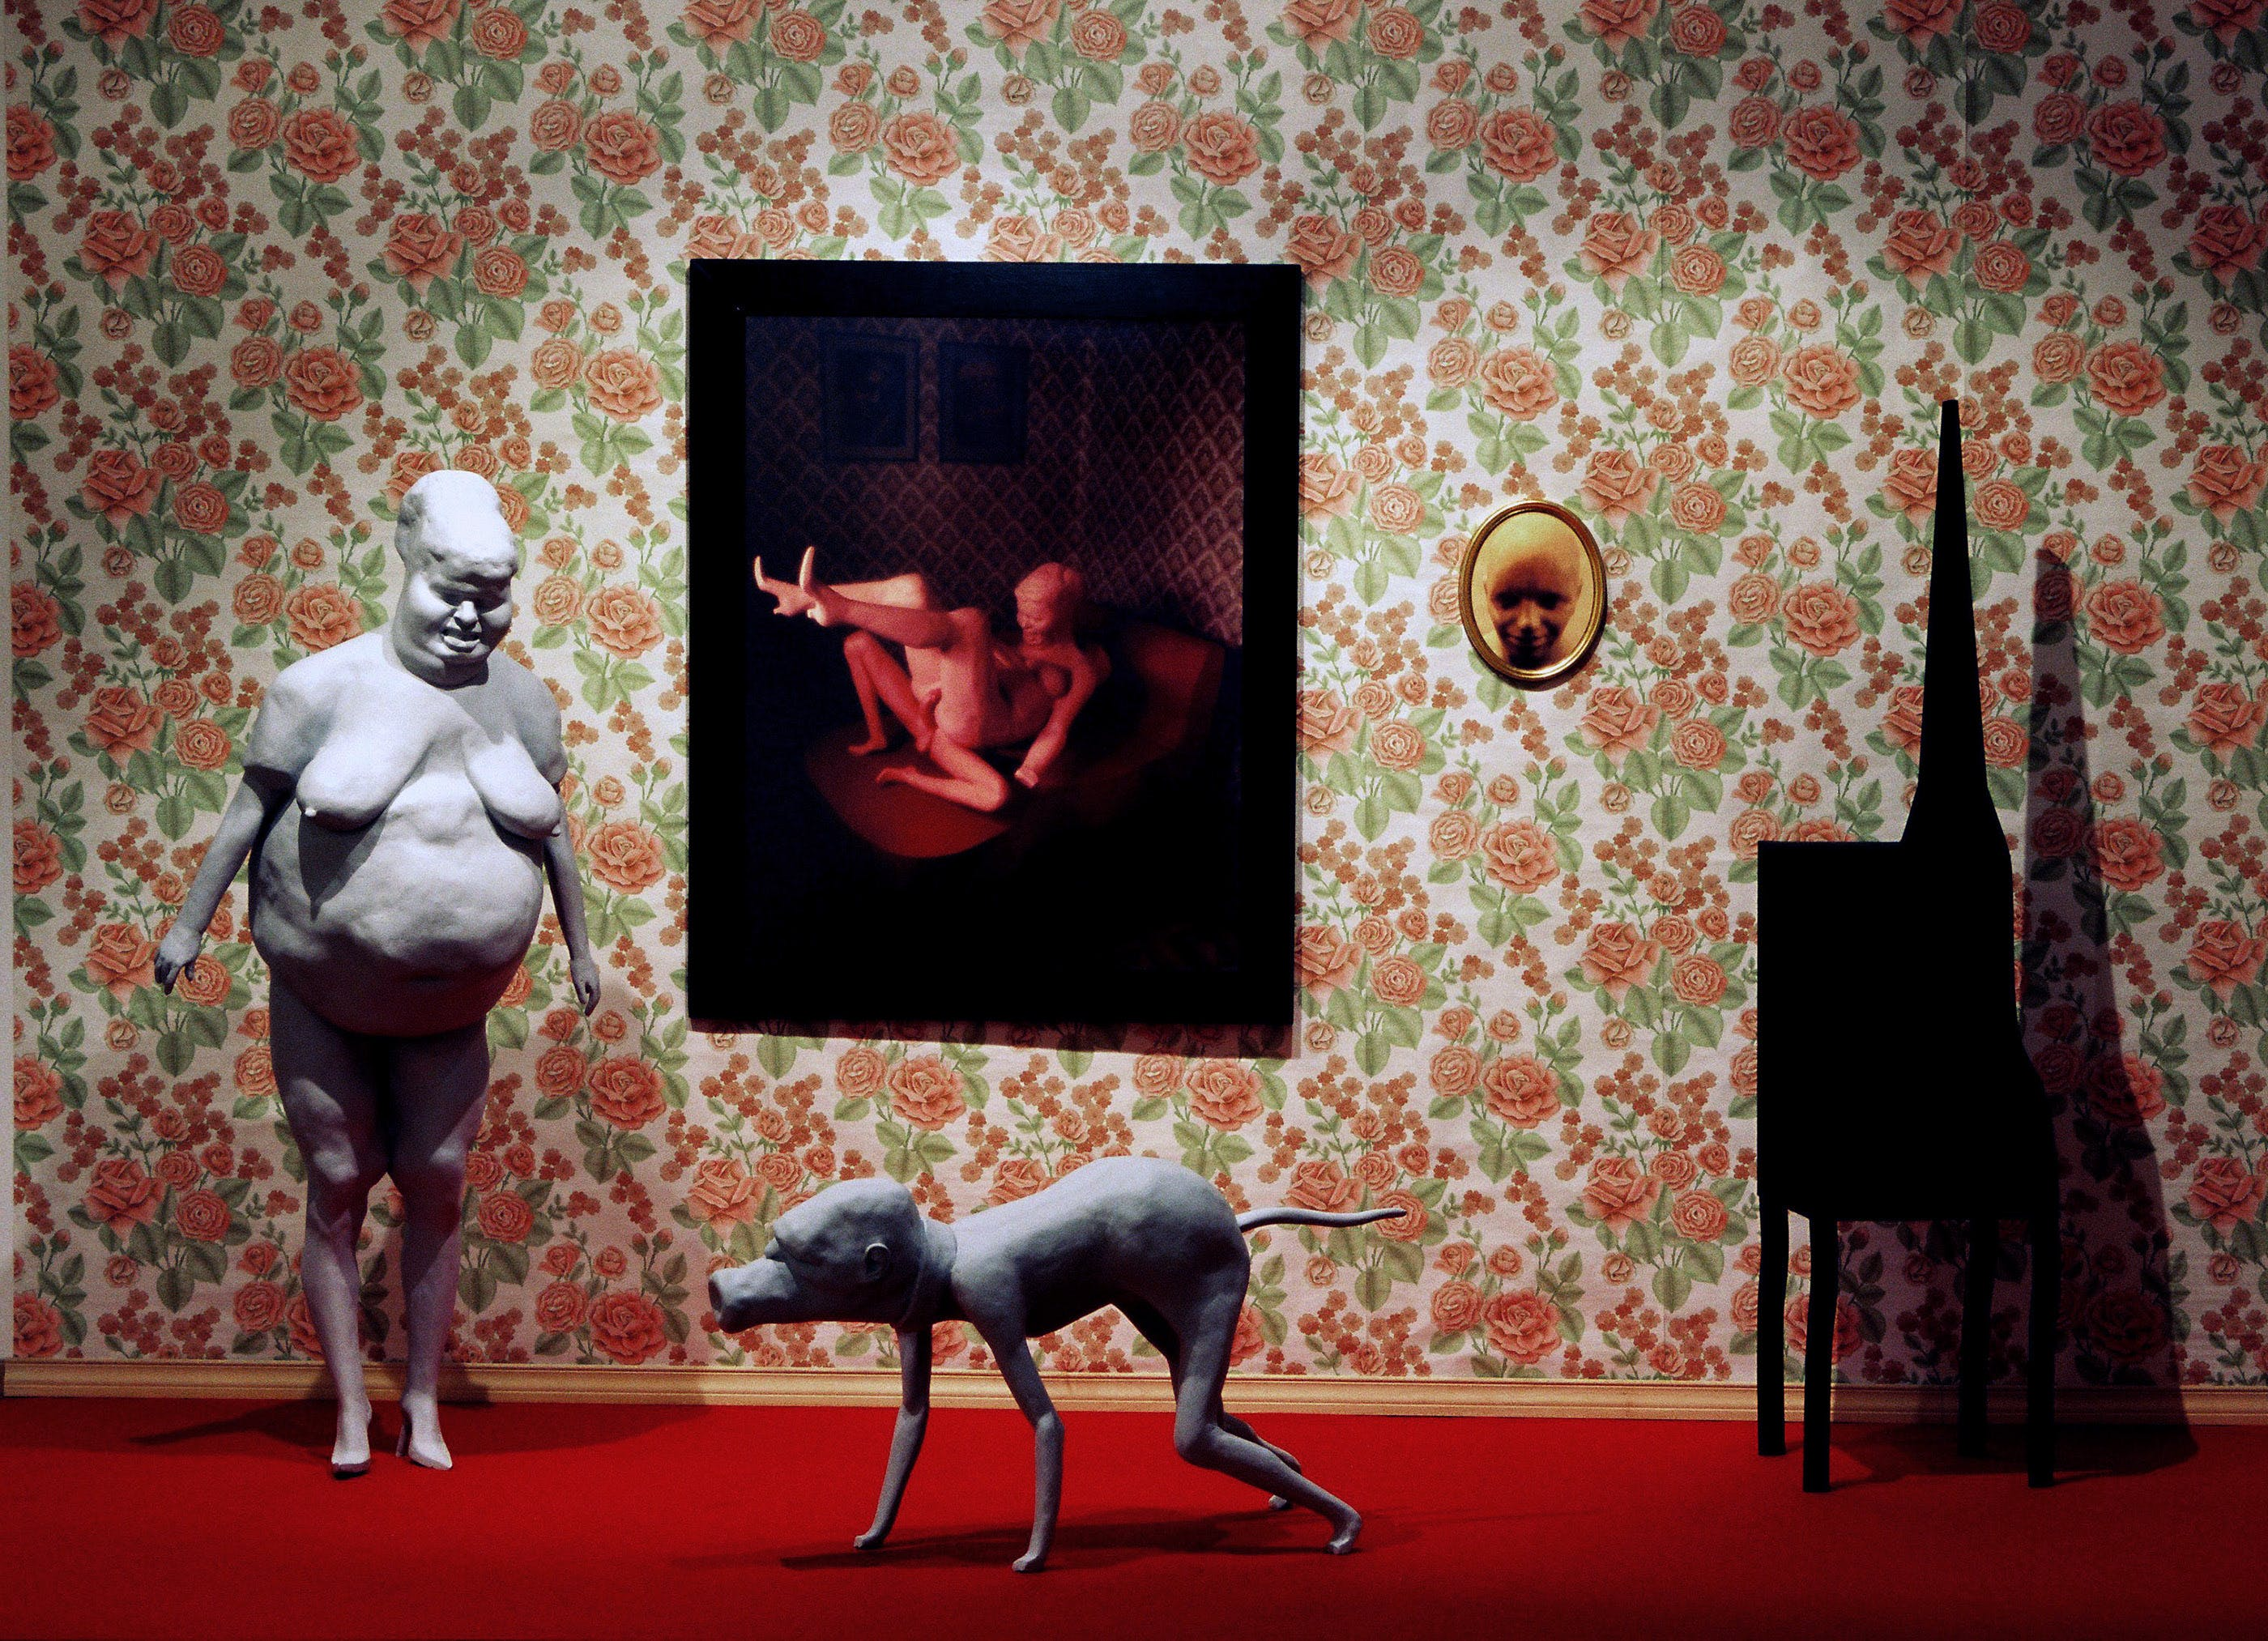 Iván Prieto: The Imperfections and Weirdness of Being Human